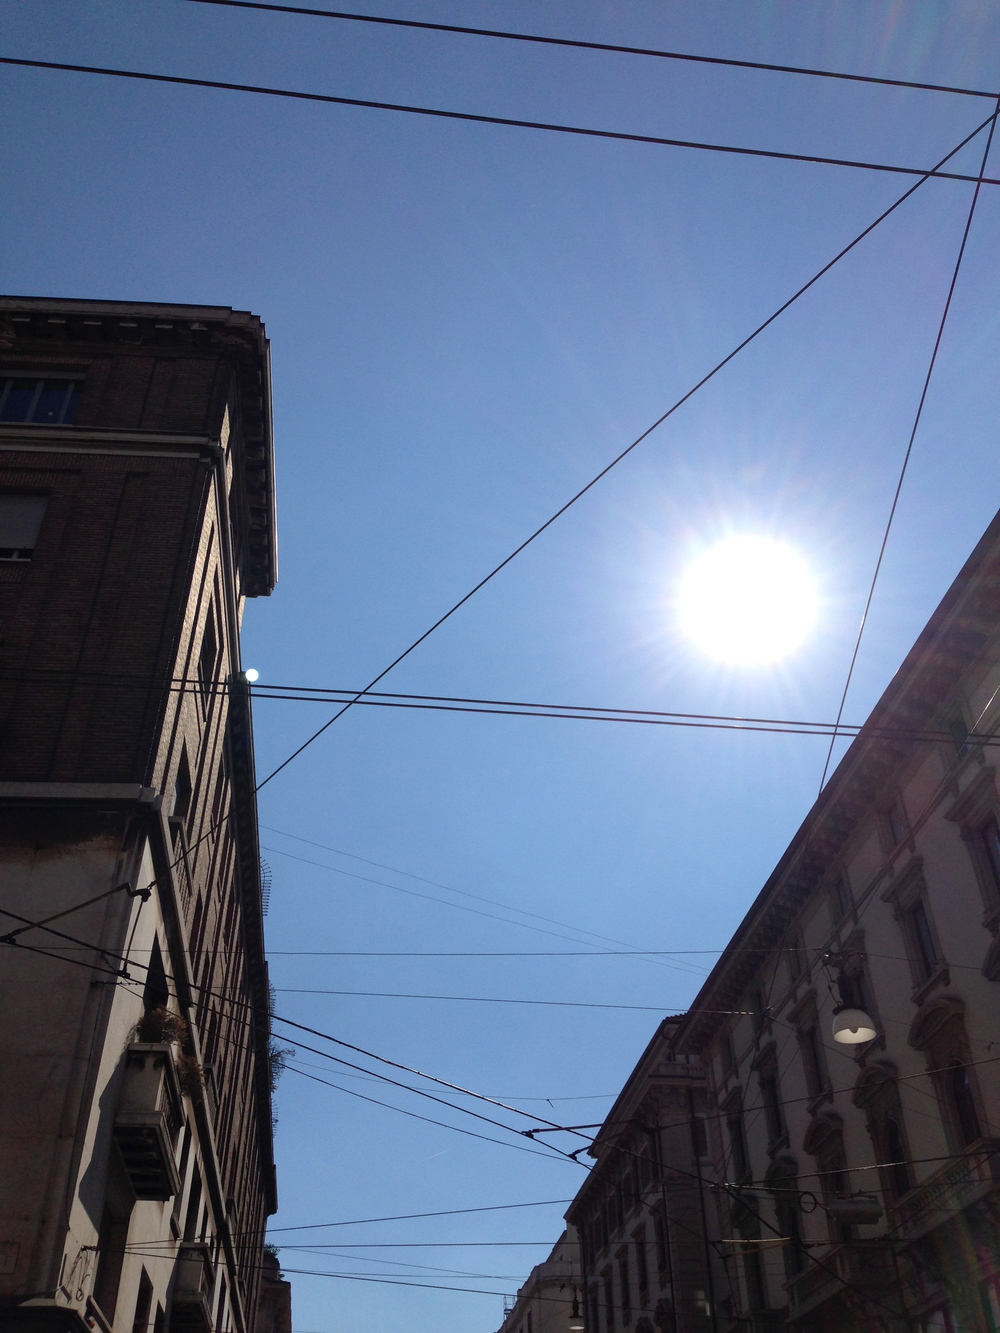 Looking up; Milan